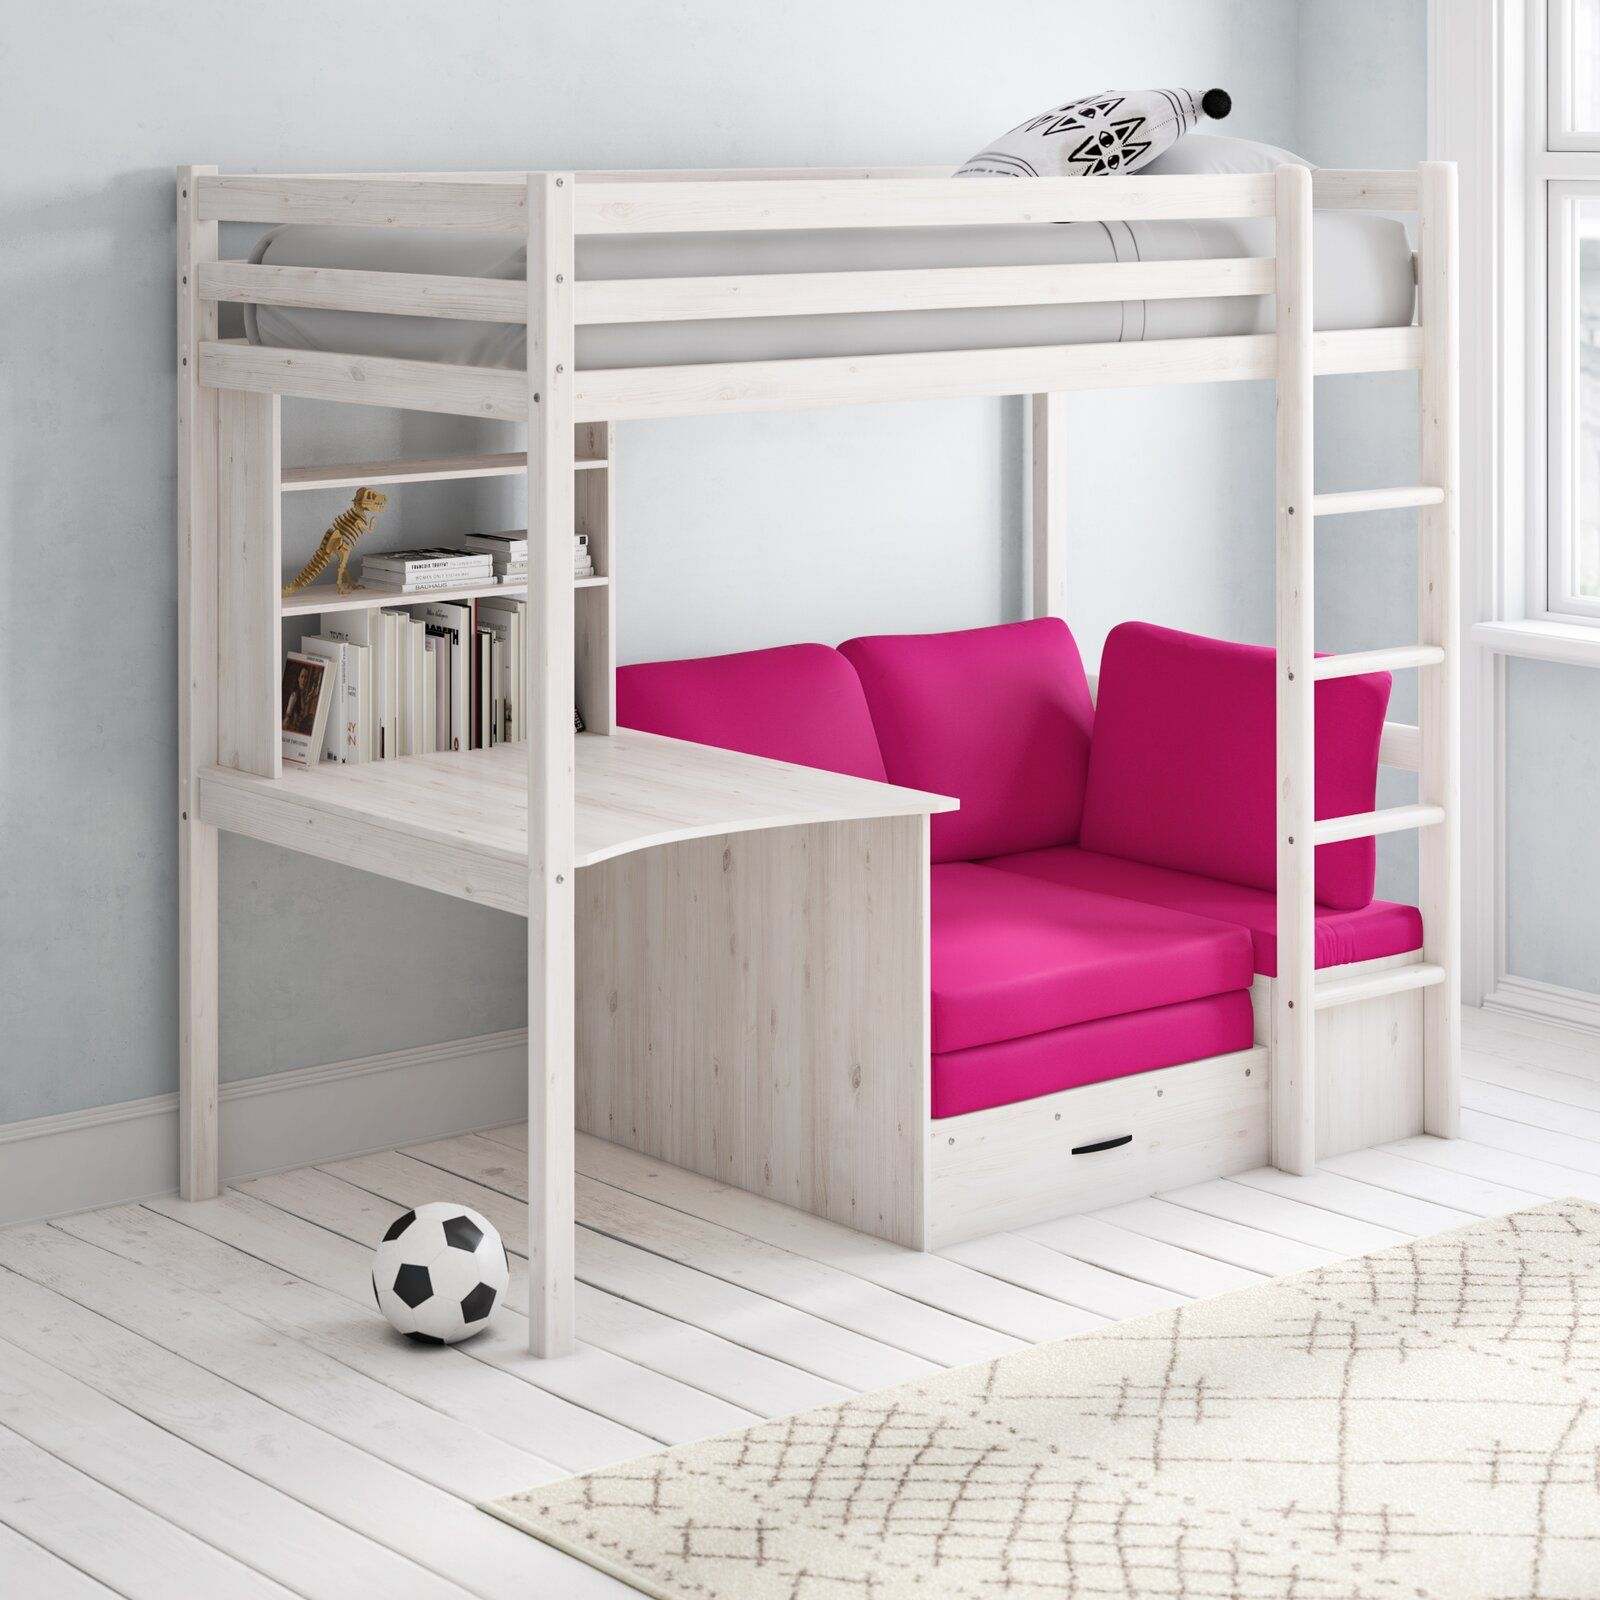 Robin European Single Futon Bunk Bed Flexa Colour Fabric